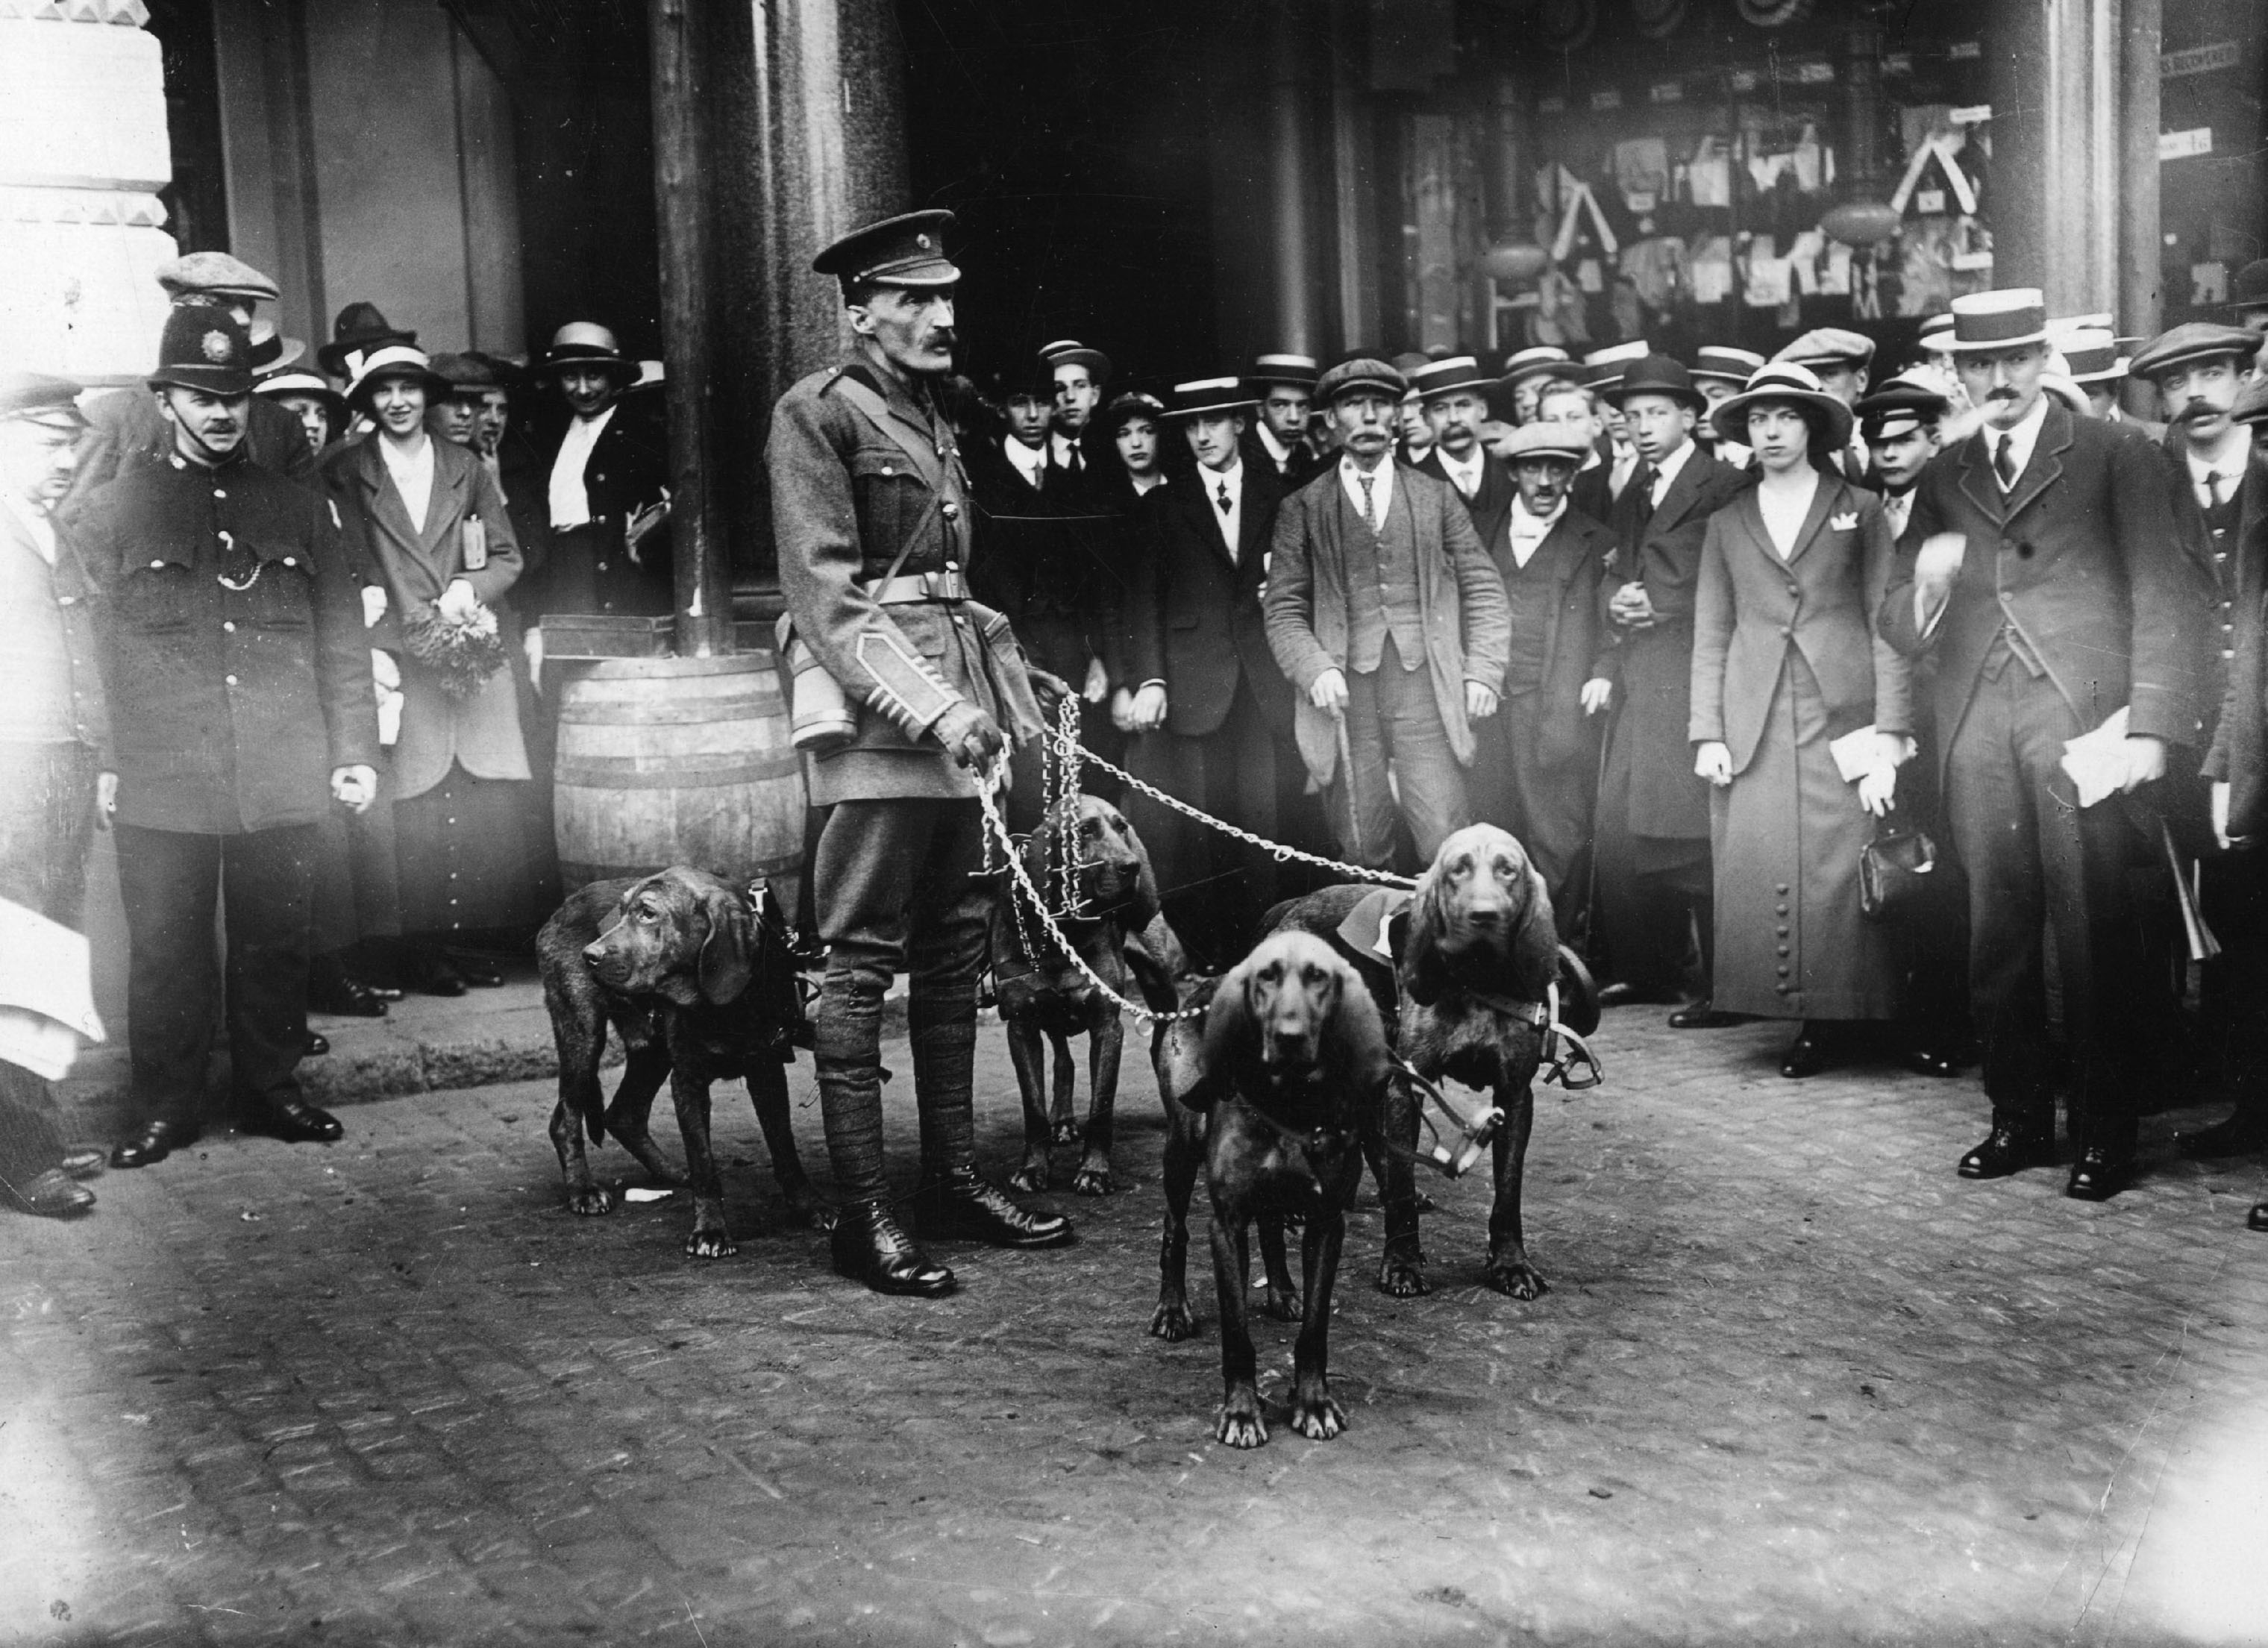 A crowd of onlookers watches Major Richardson with his bloodhounds in London on April 18,1914. They assisted the British Red Cross in locating wounded soldiers on the battlefields of World War I.